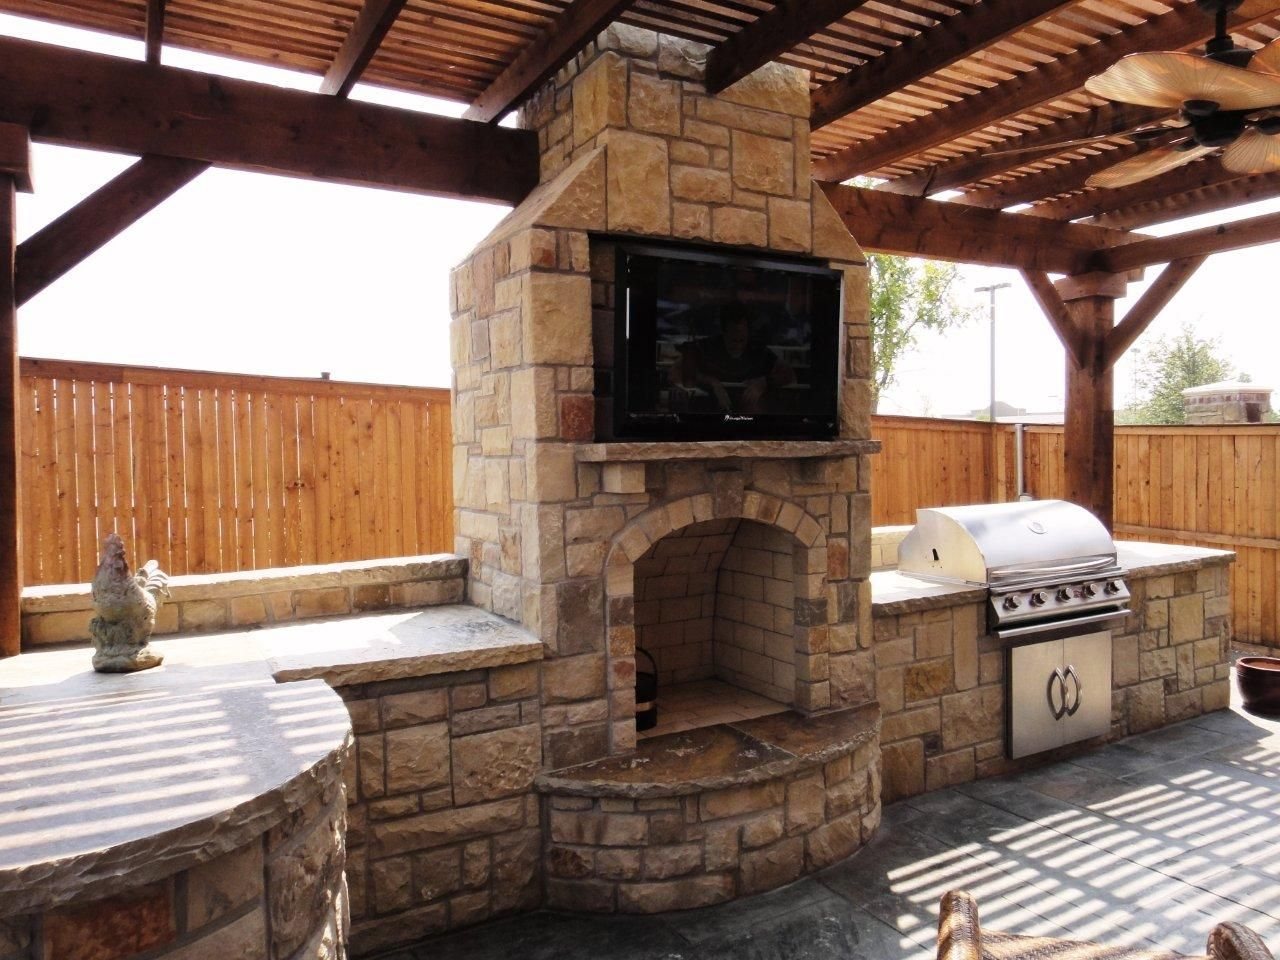 Dallas Kitchen Design Extraordinary Outdoor Kitchen Supplies Stone Oven  Best Kitchen Design Ideas Design Inspiration